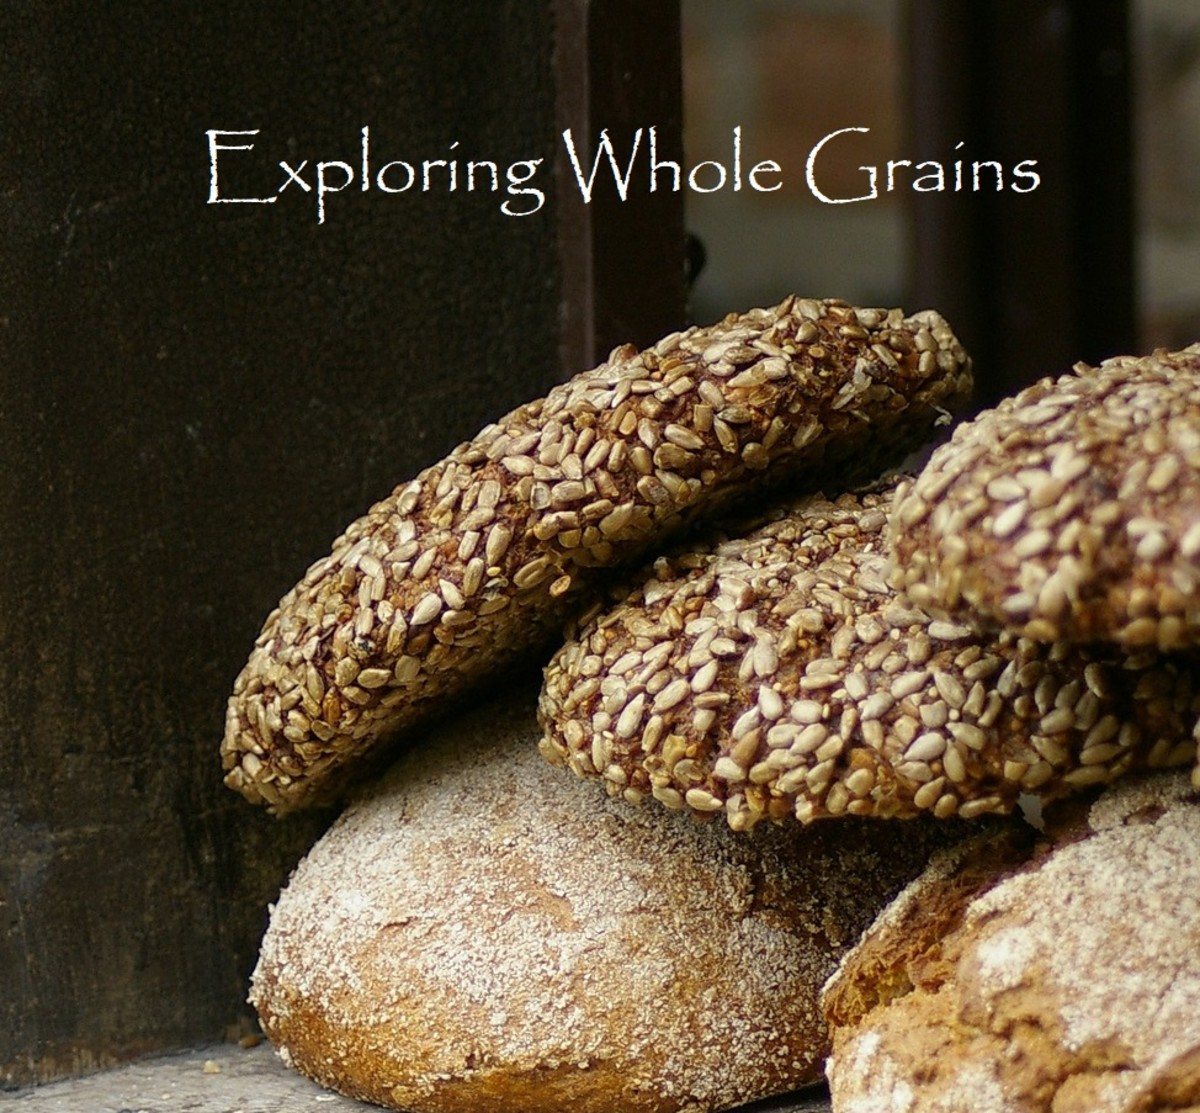 Exploring Whole Grains